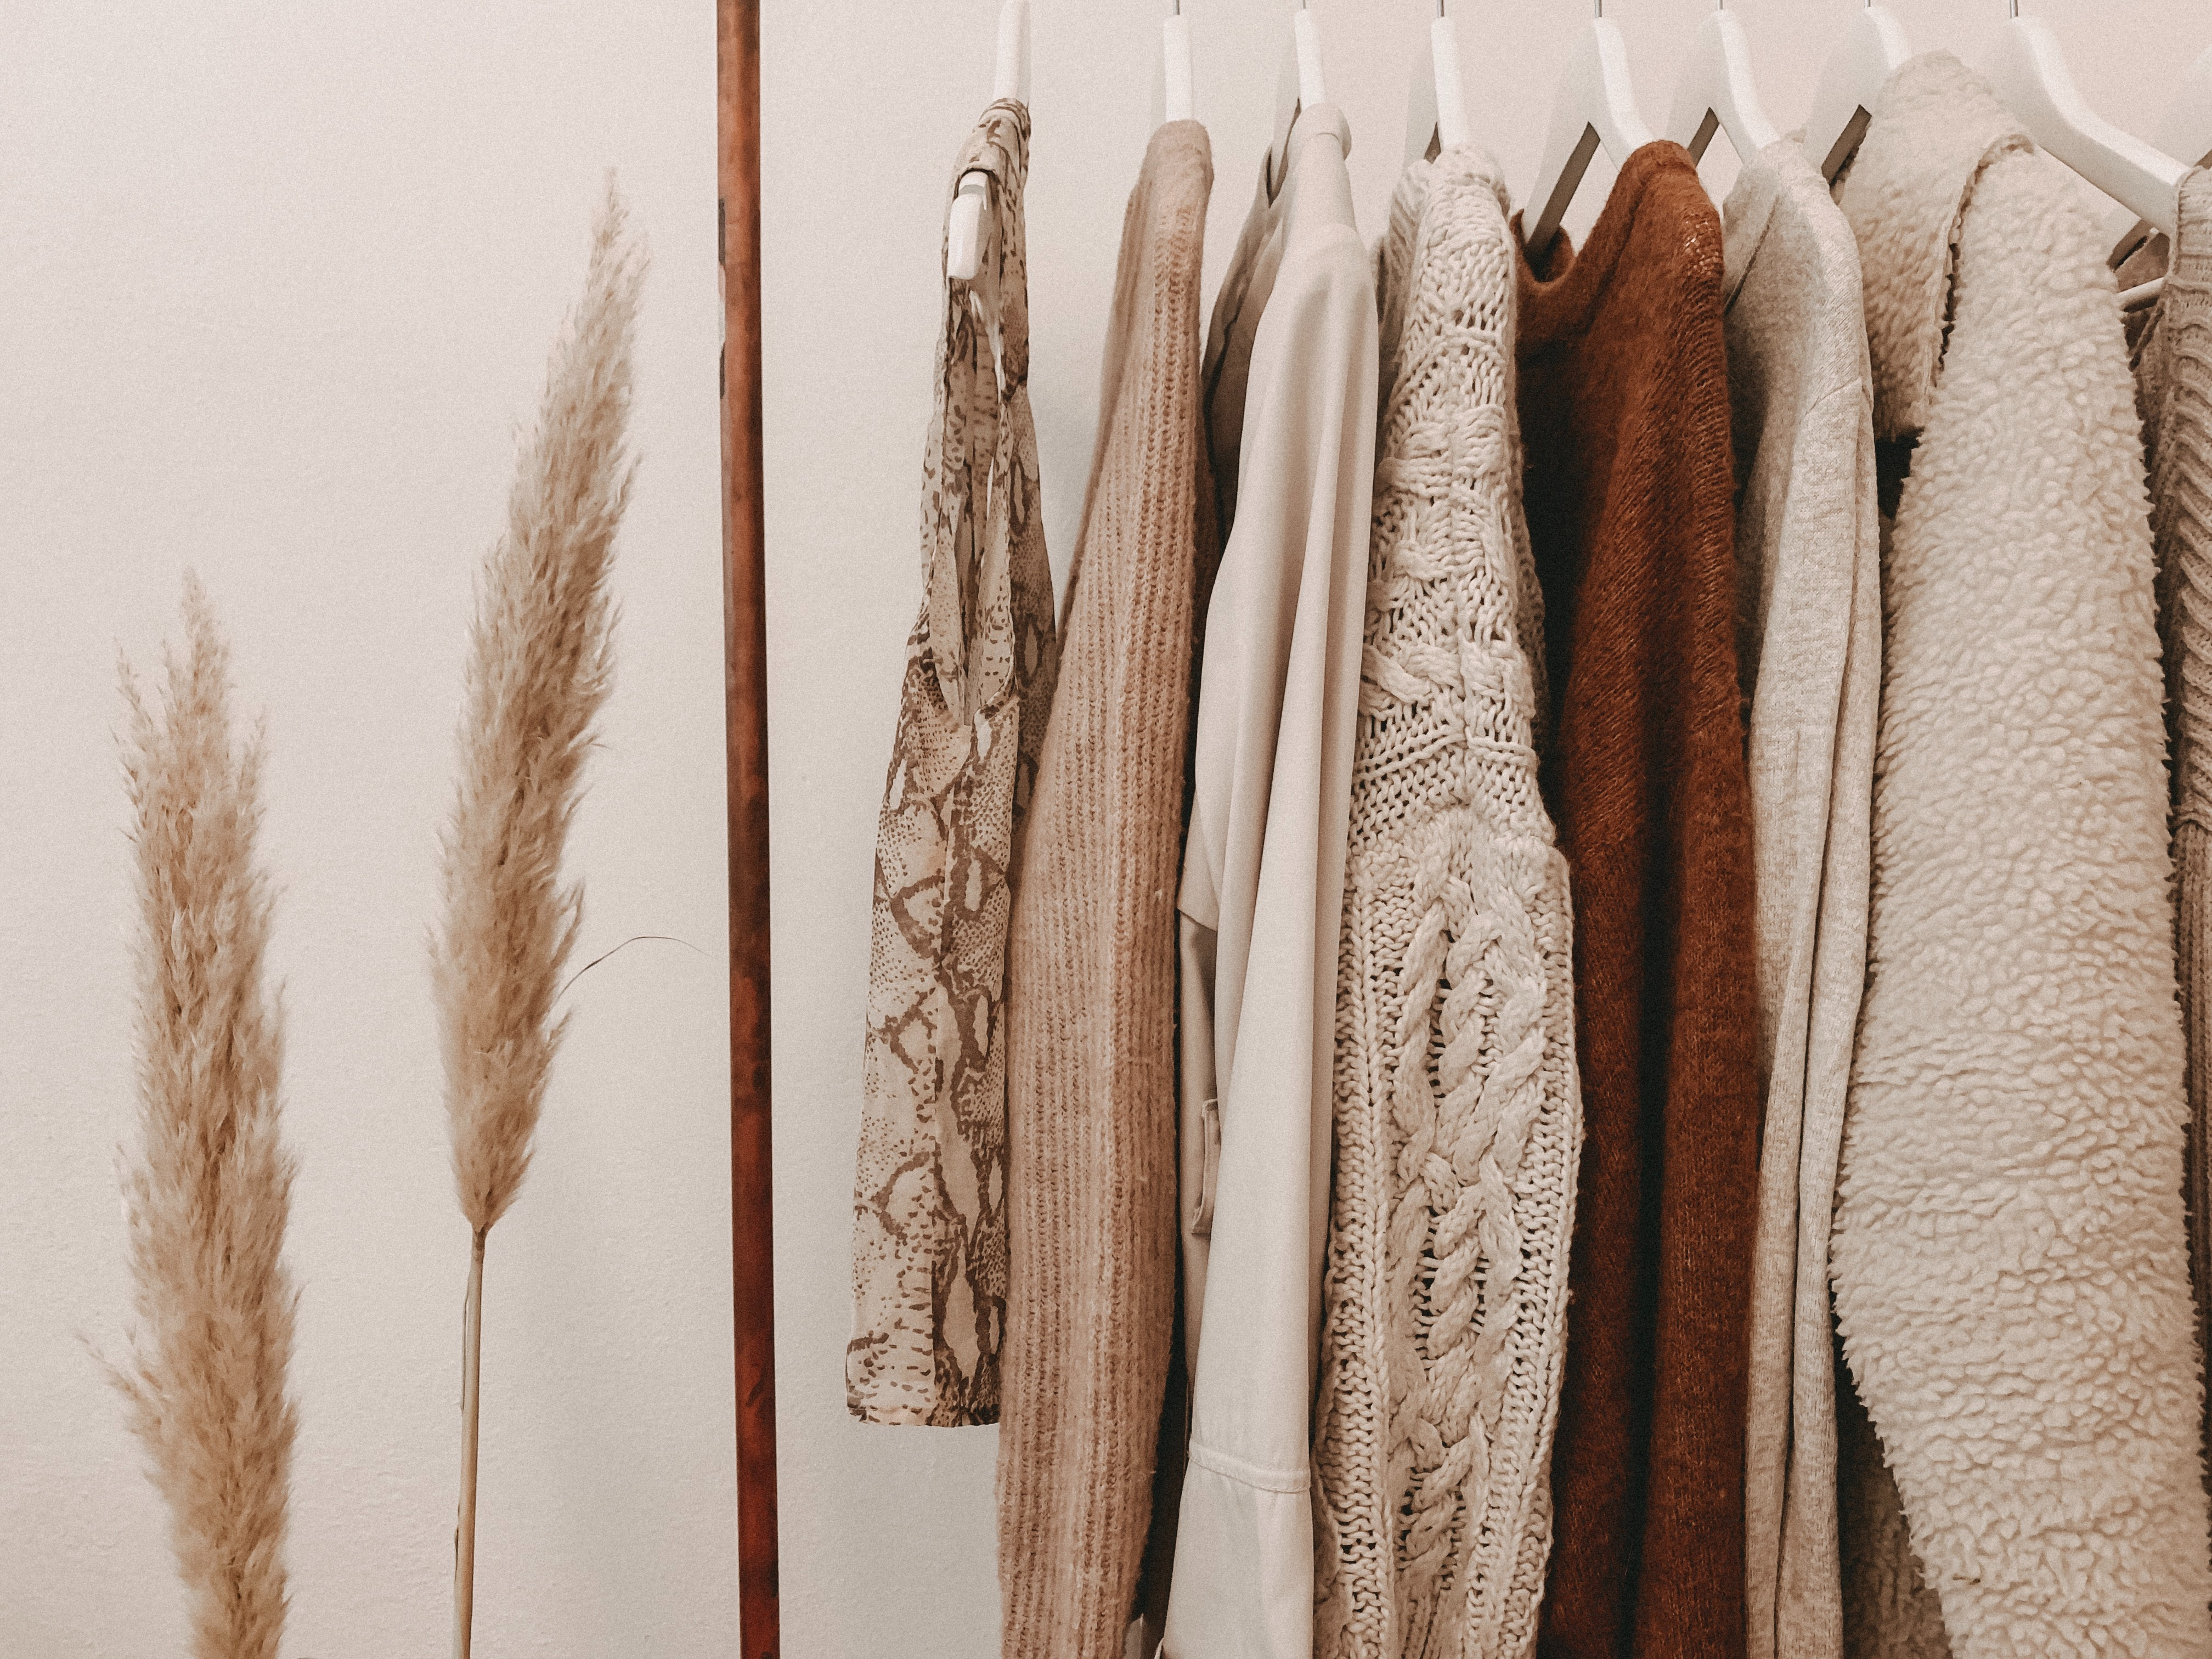 clothes made in fabric with texture